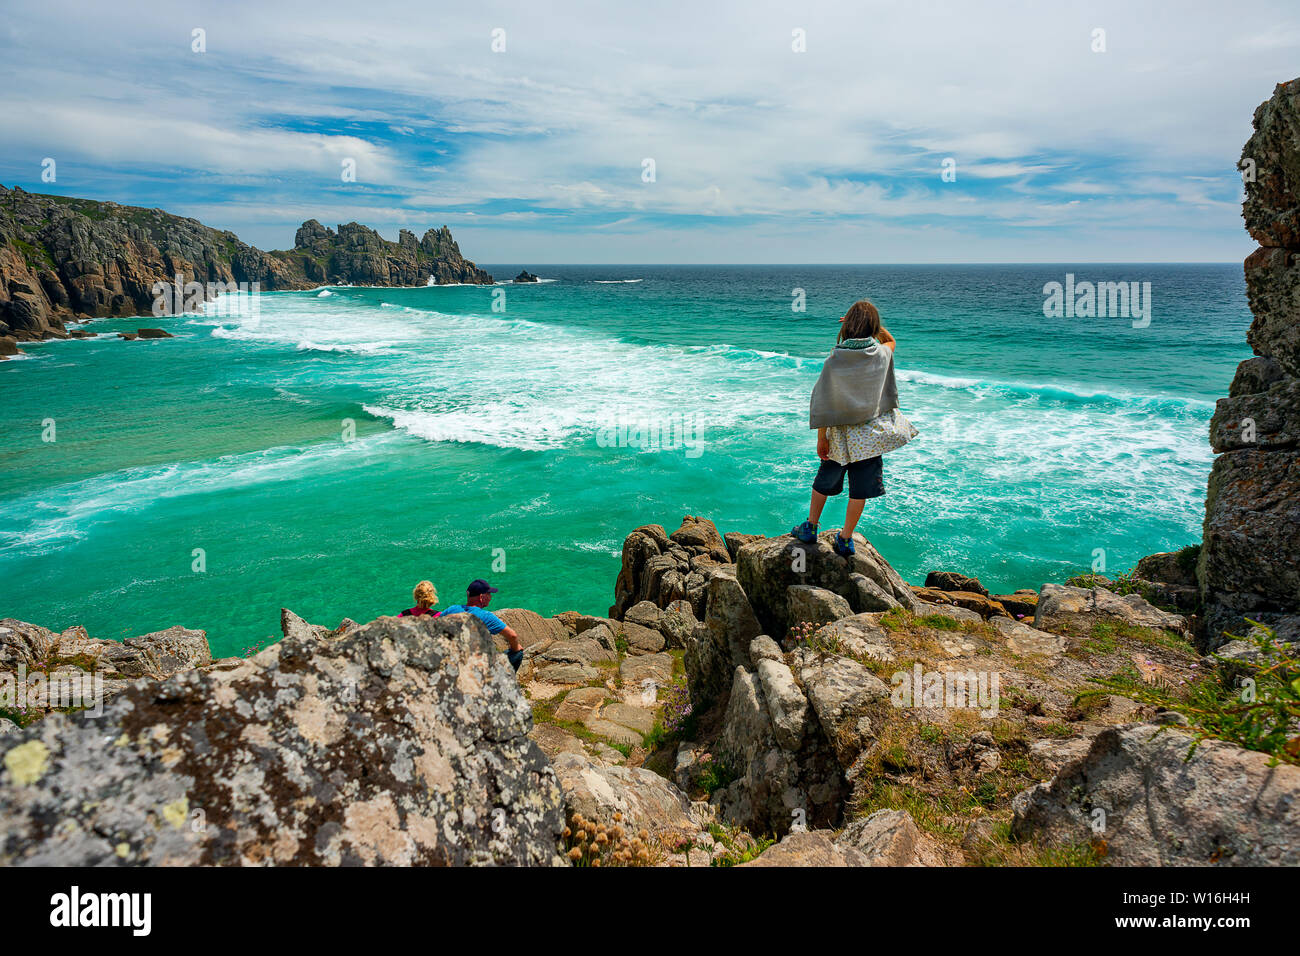 Editorial: National Trust Land, Unknown member of the public. Porthcurno, Cornwall, UK. 31/05/2019. Looking across from Porthcurno to Pednvouder. Stock Photo